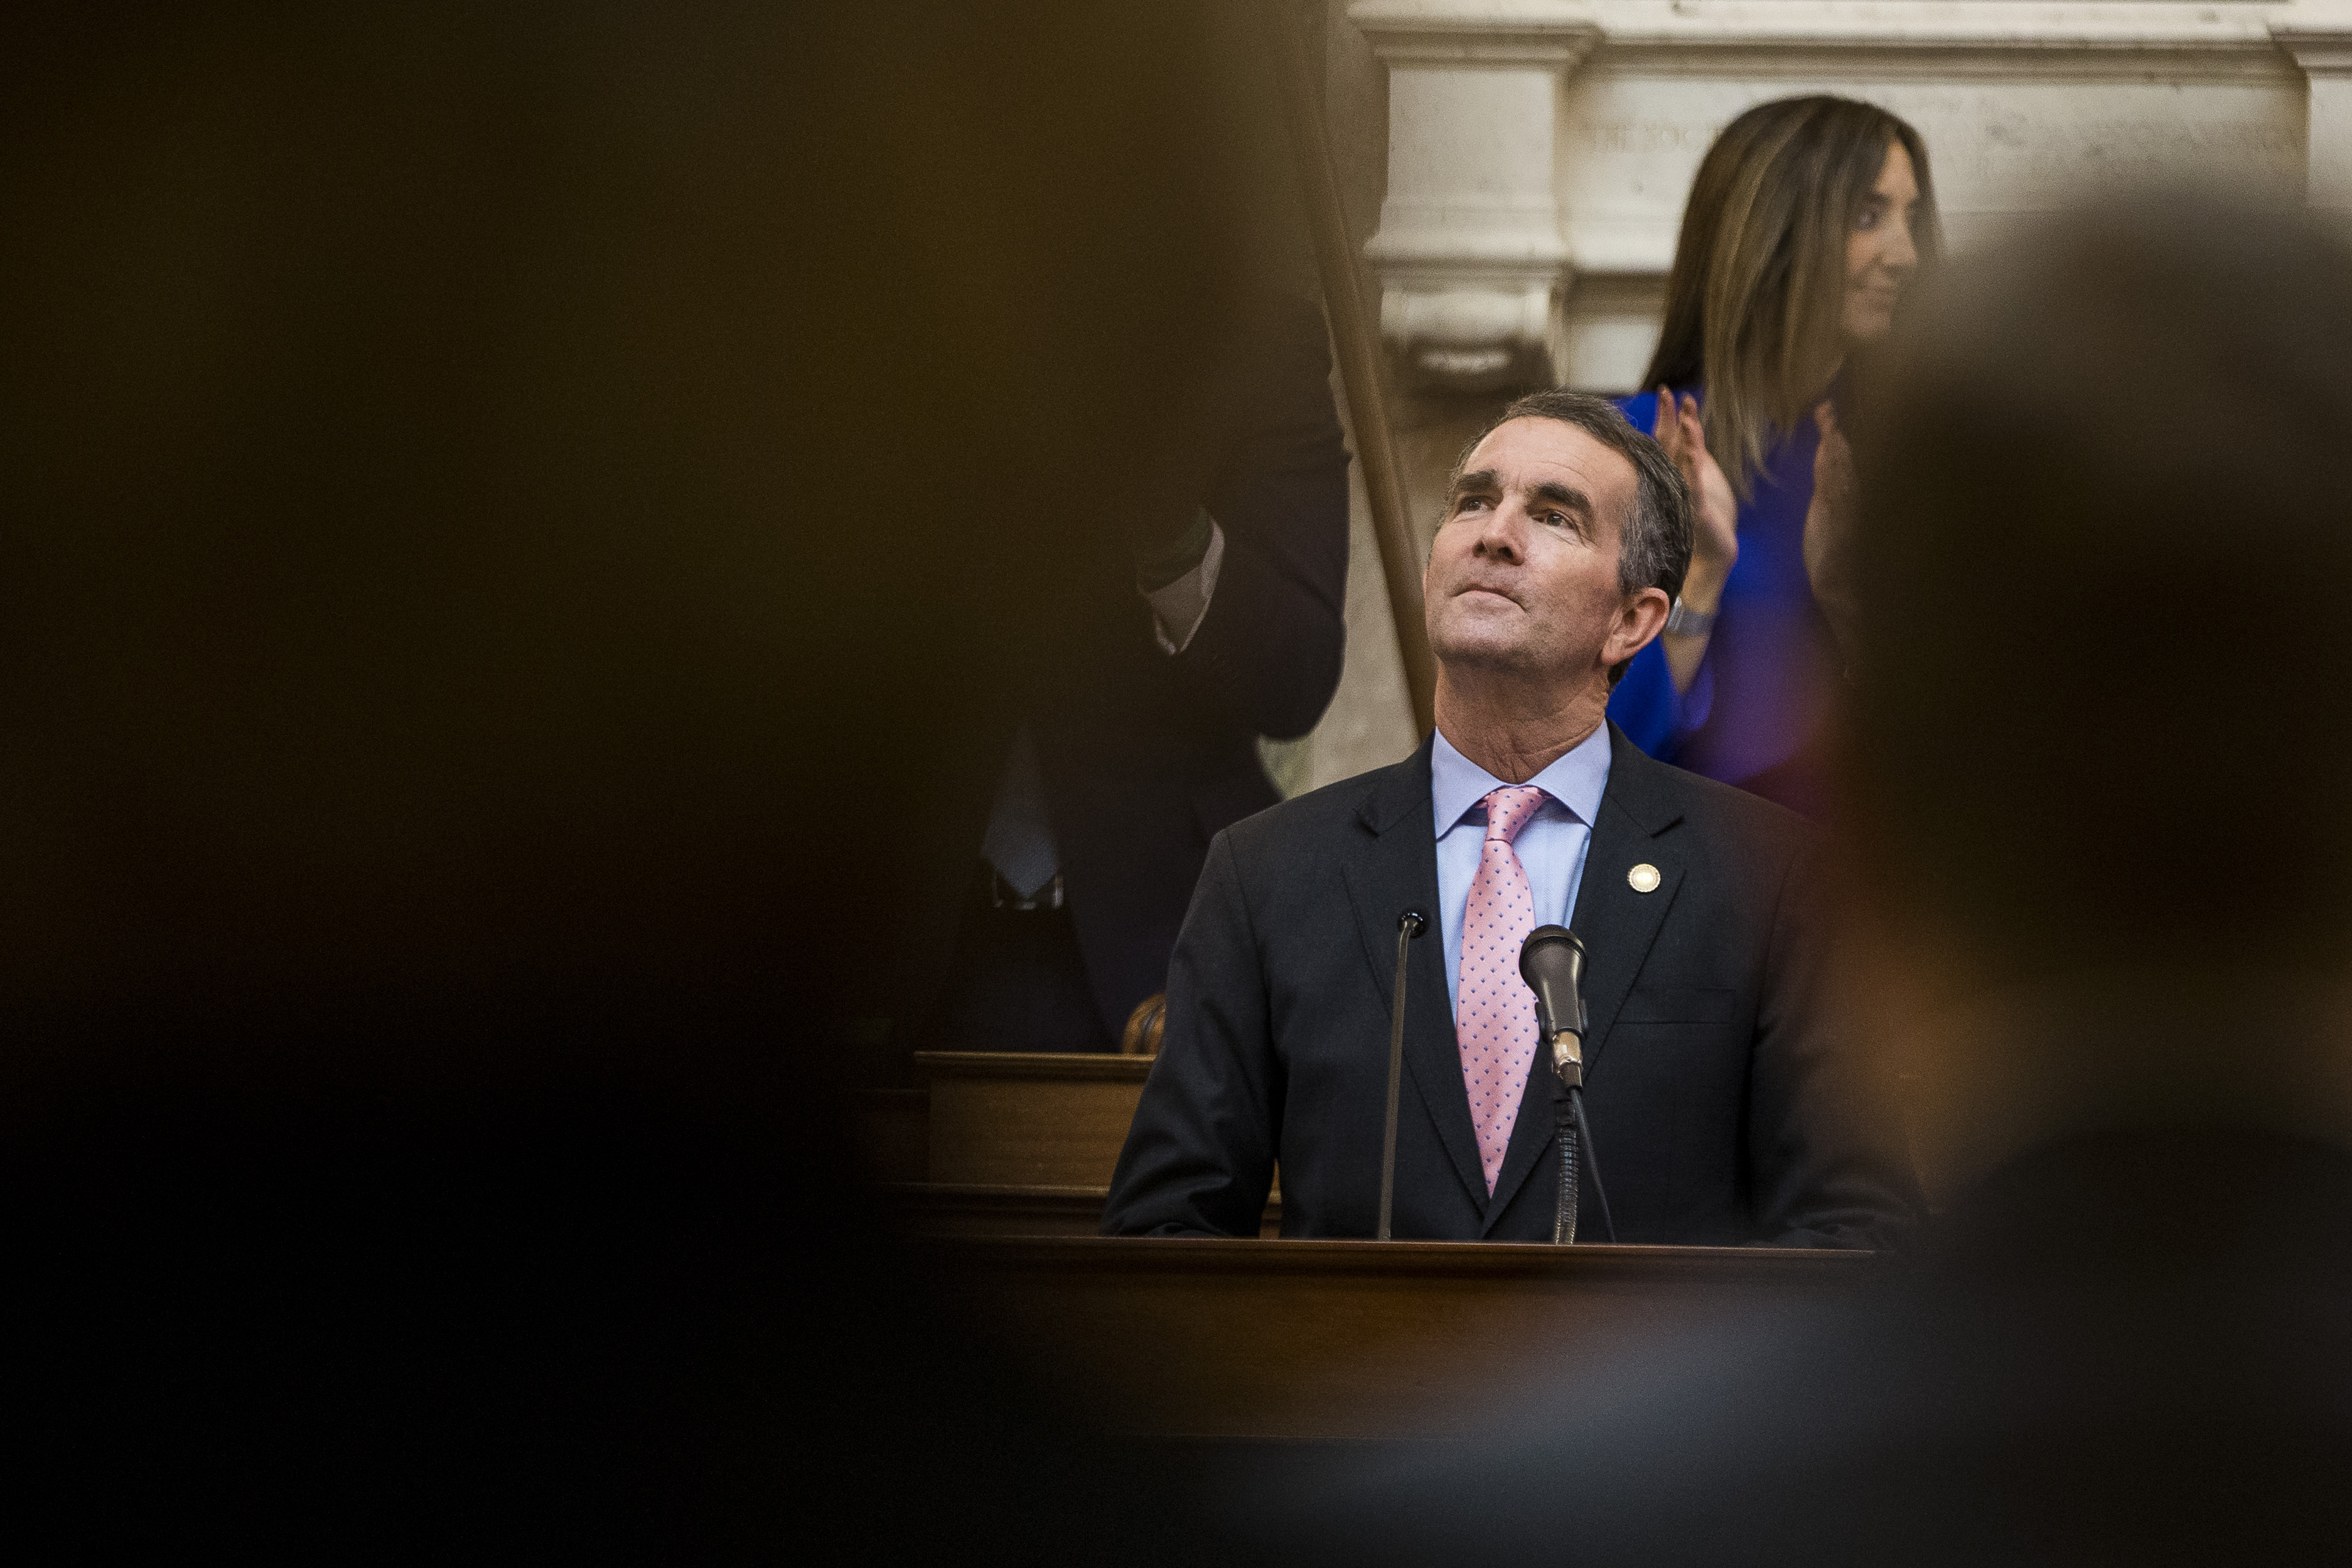 RICHMOND, VA - JANUARY 08: Gov. Ralph Northam delivers the State of the Commonwealth address at the Virginia State Capitol on January 8, 2020 in Richmond, Virginia. The 2020 legislative session began today under Democratic control. (Zach Gibson/Getty Images)